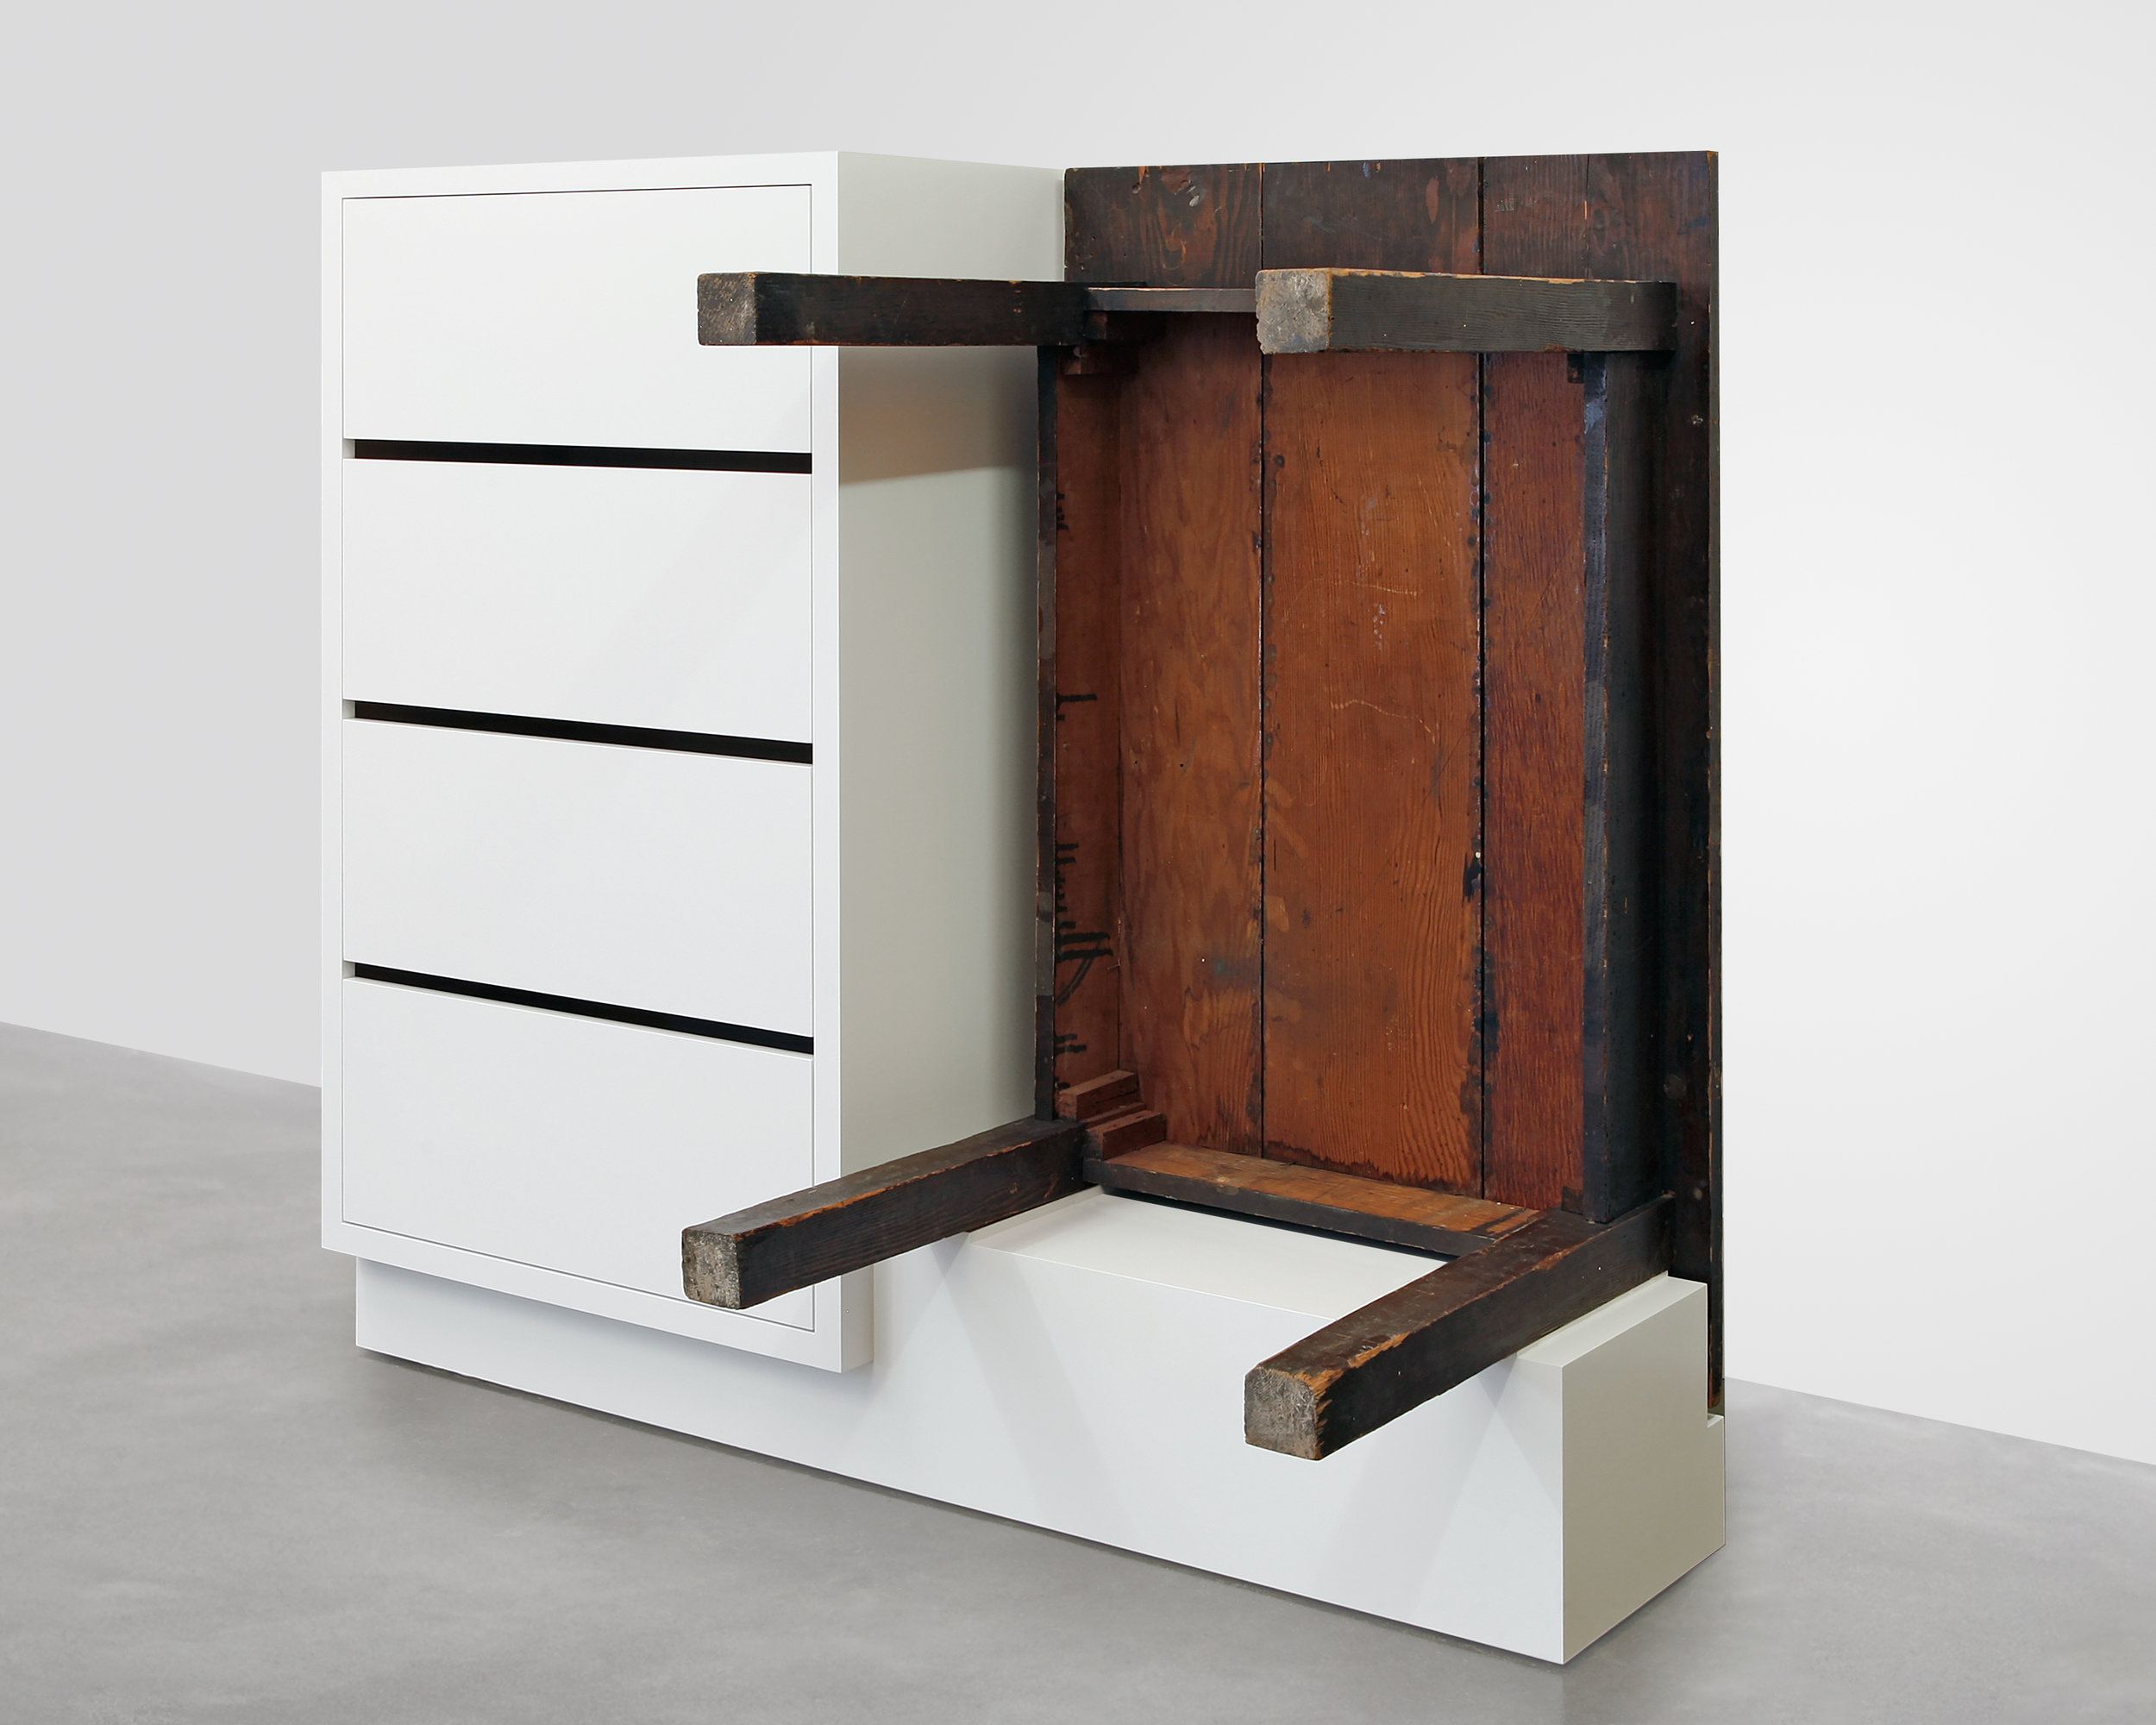 Chest of Drawers with Table, 2016